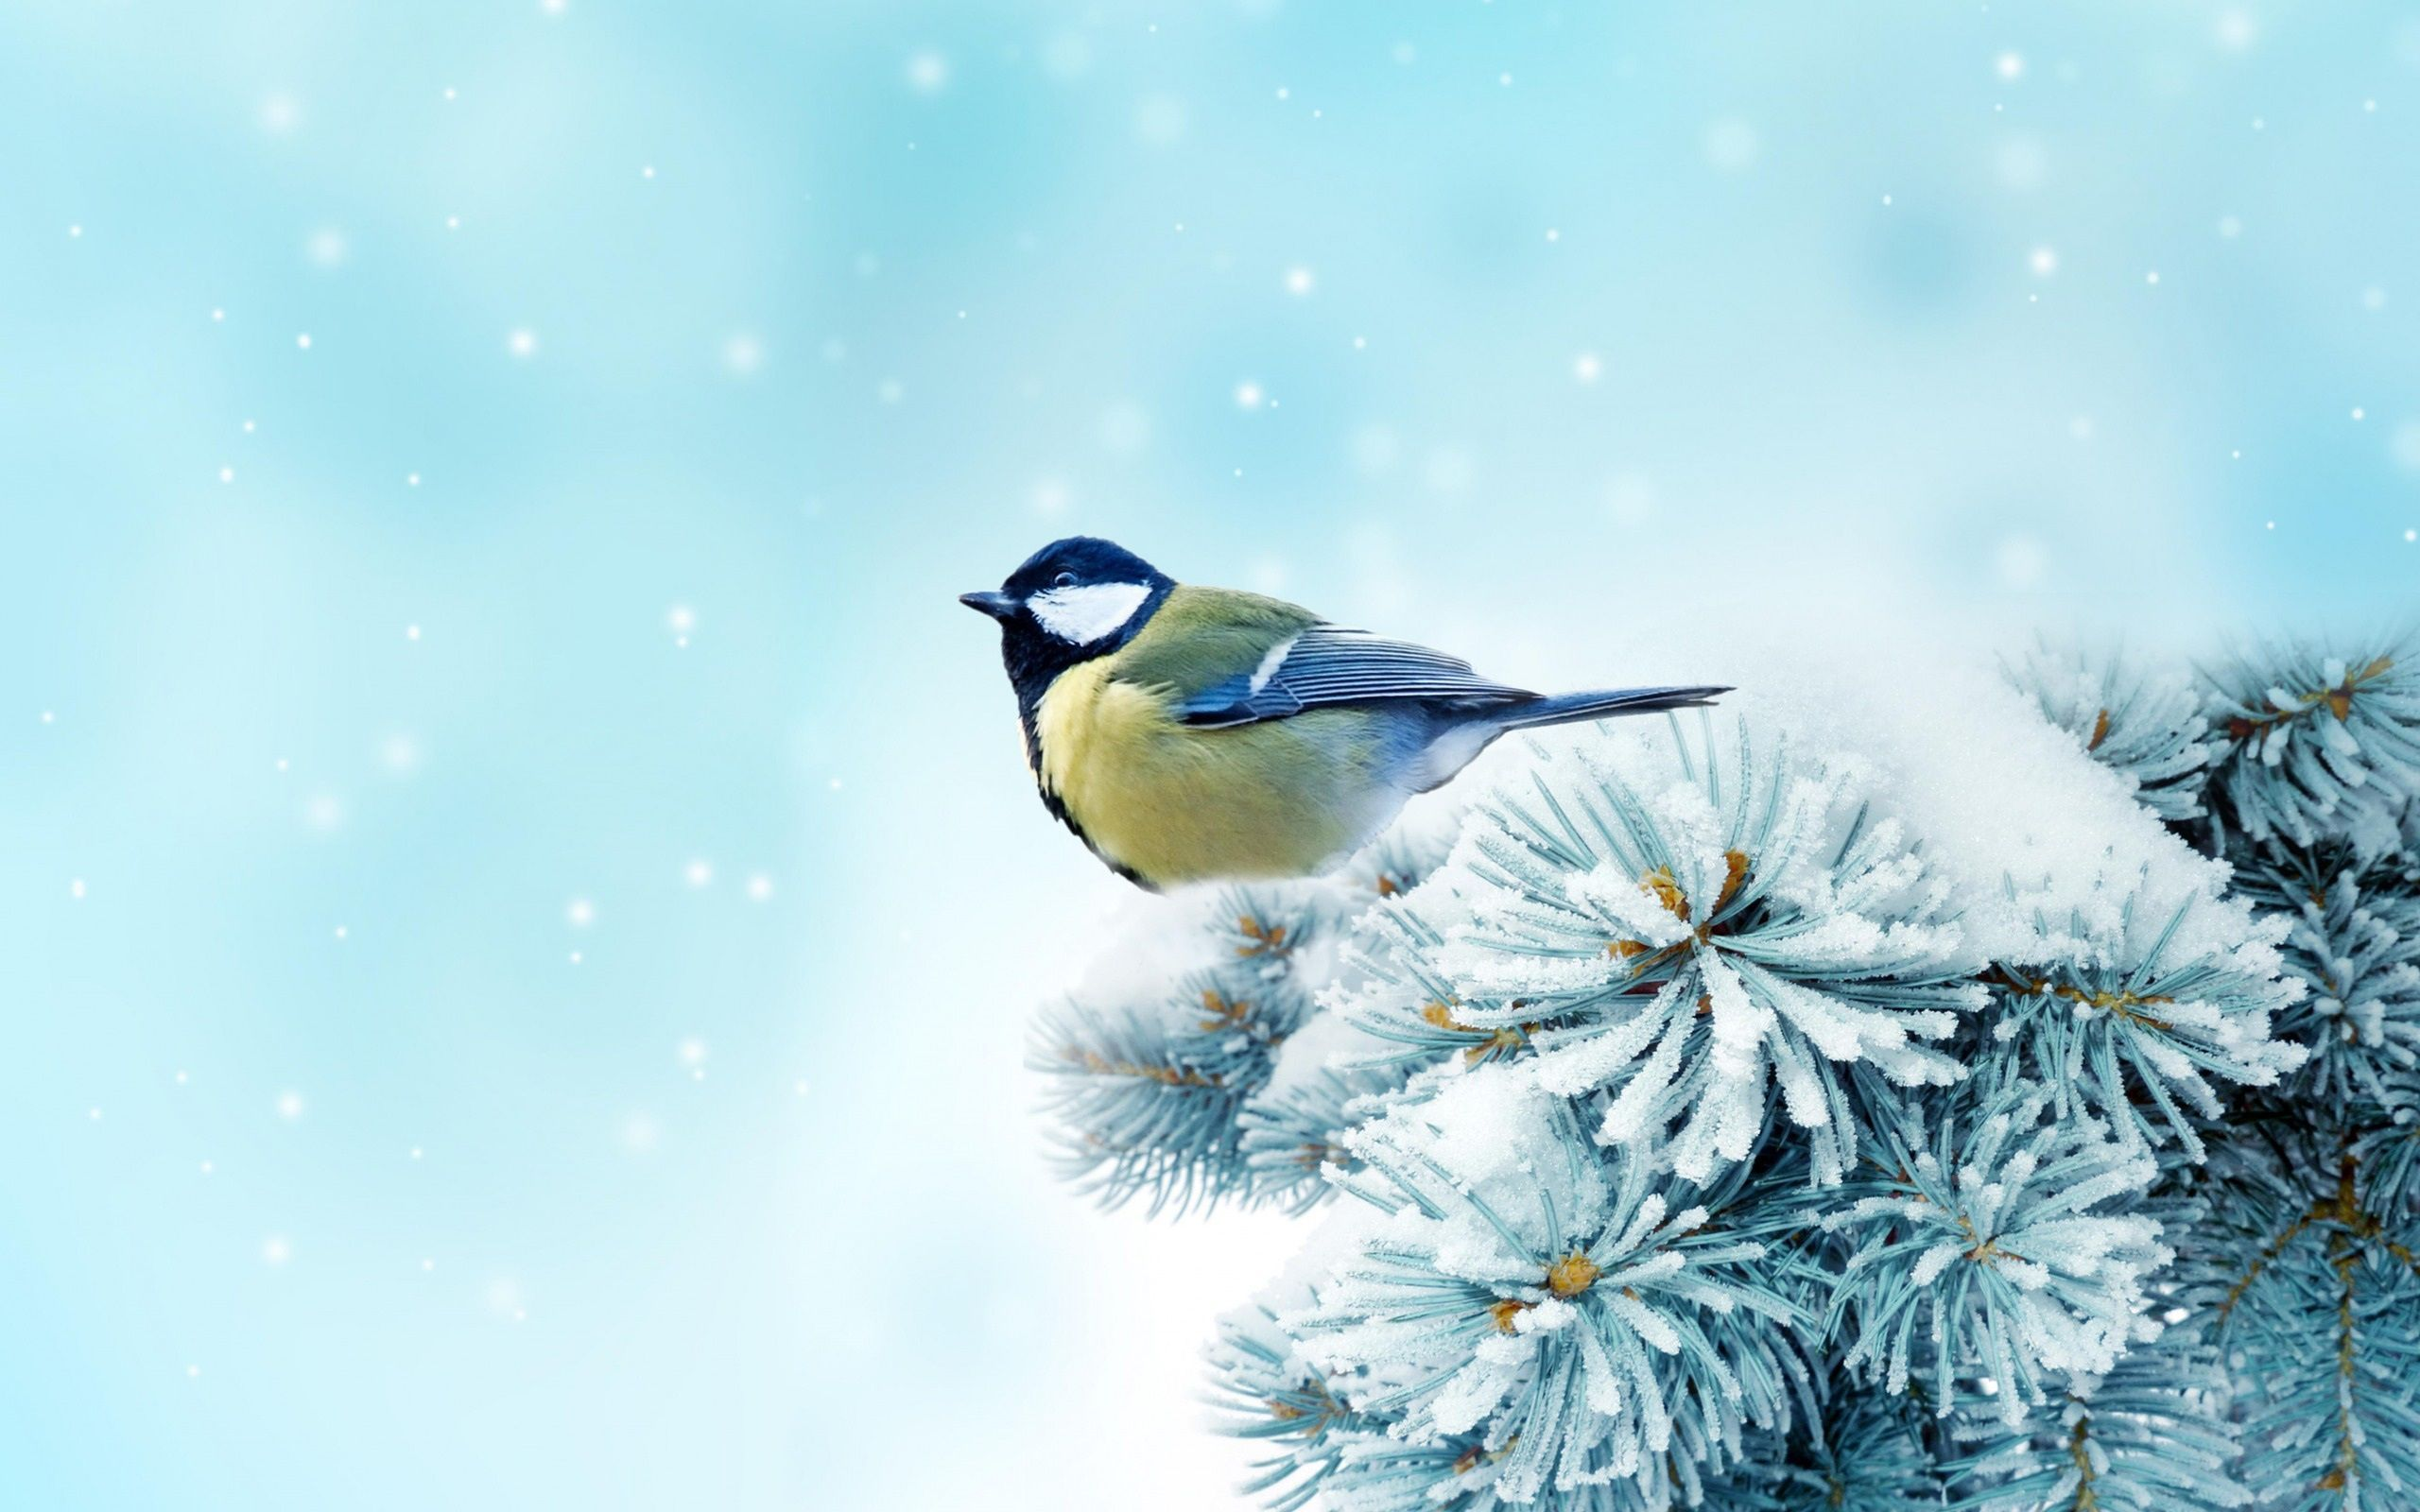 Miscellaneous: Tomtit on Christmas Tree, created by visionFez, picture nr. 62237